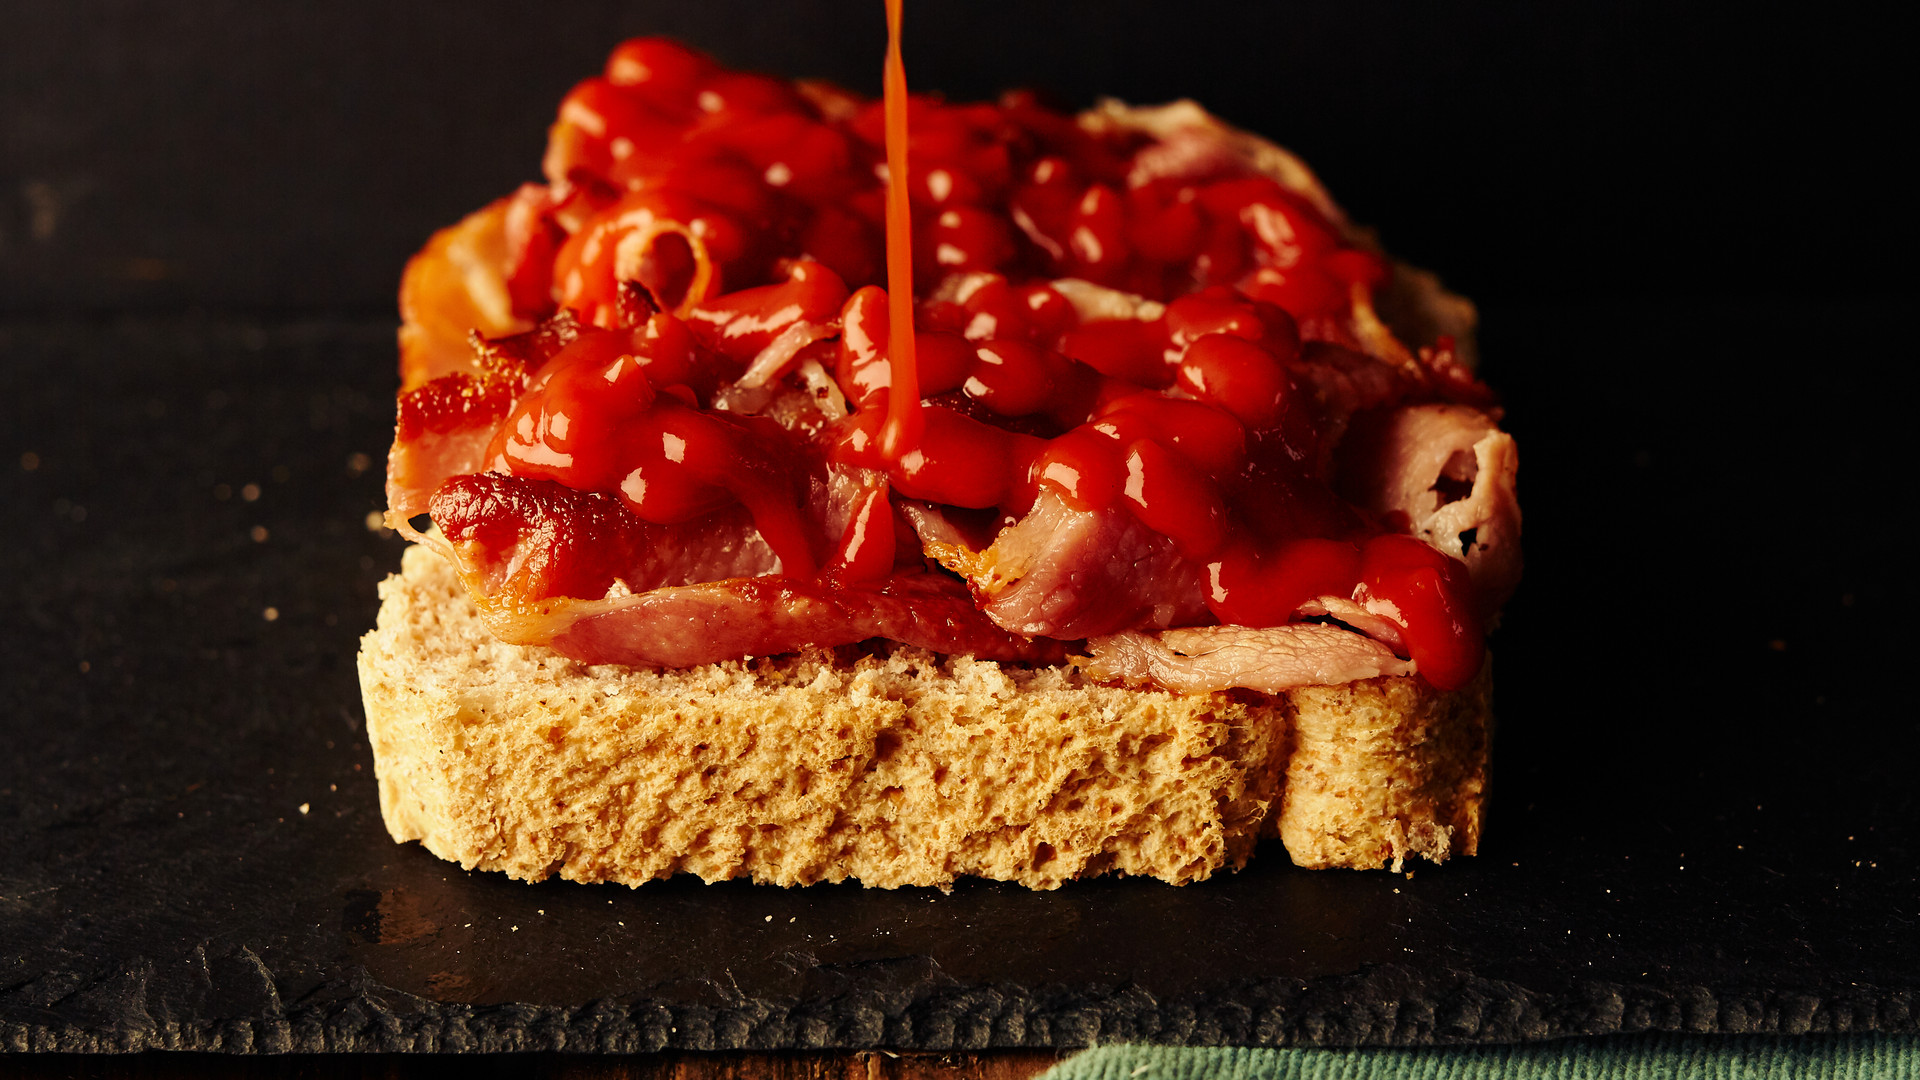 D1094-Lockdown Test Shoots Bacon Butty S